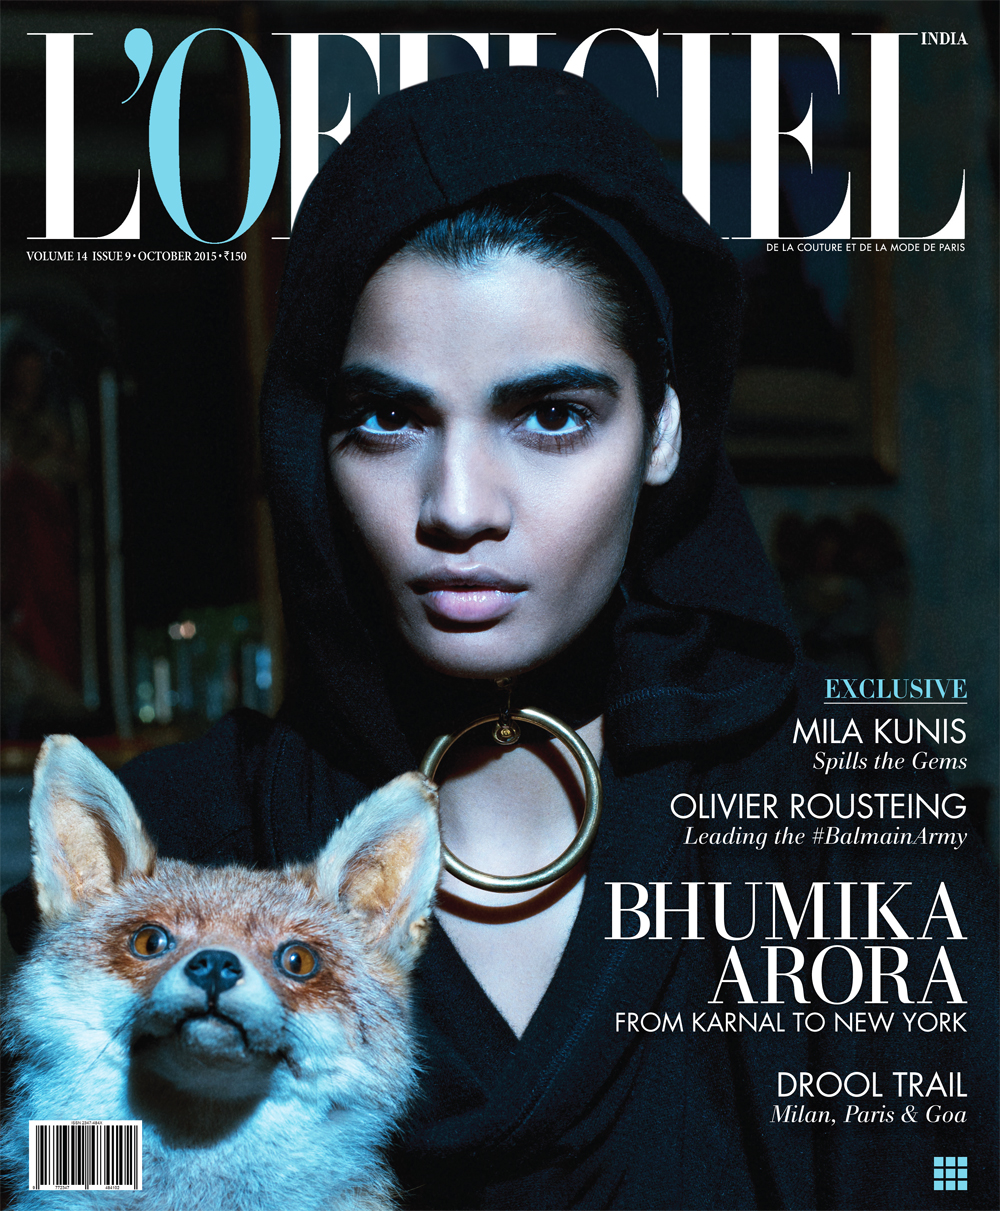 Bhumika Arora in L'Officiel India October 2015 by Onin Lorente